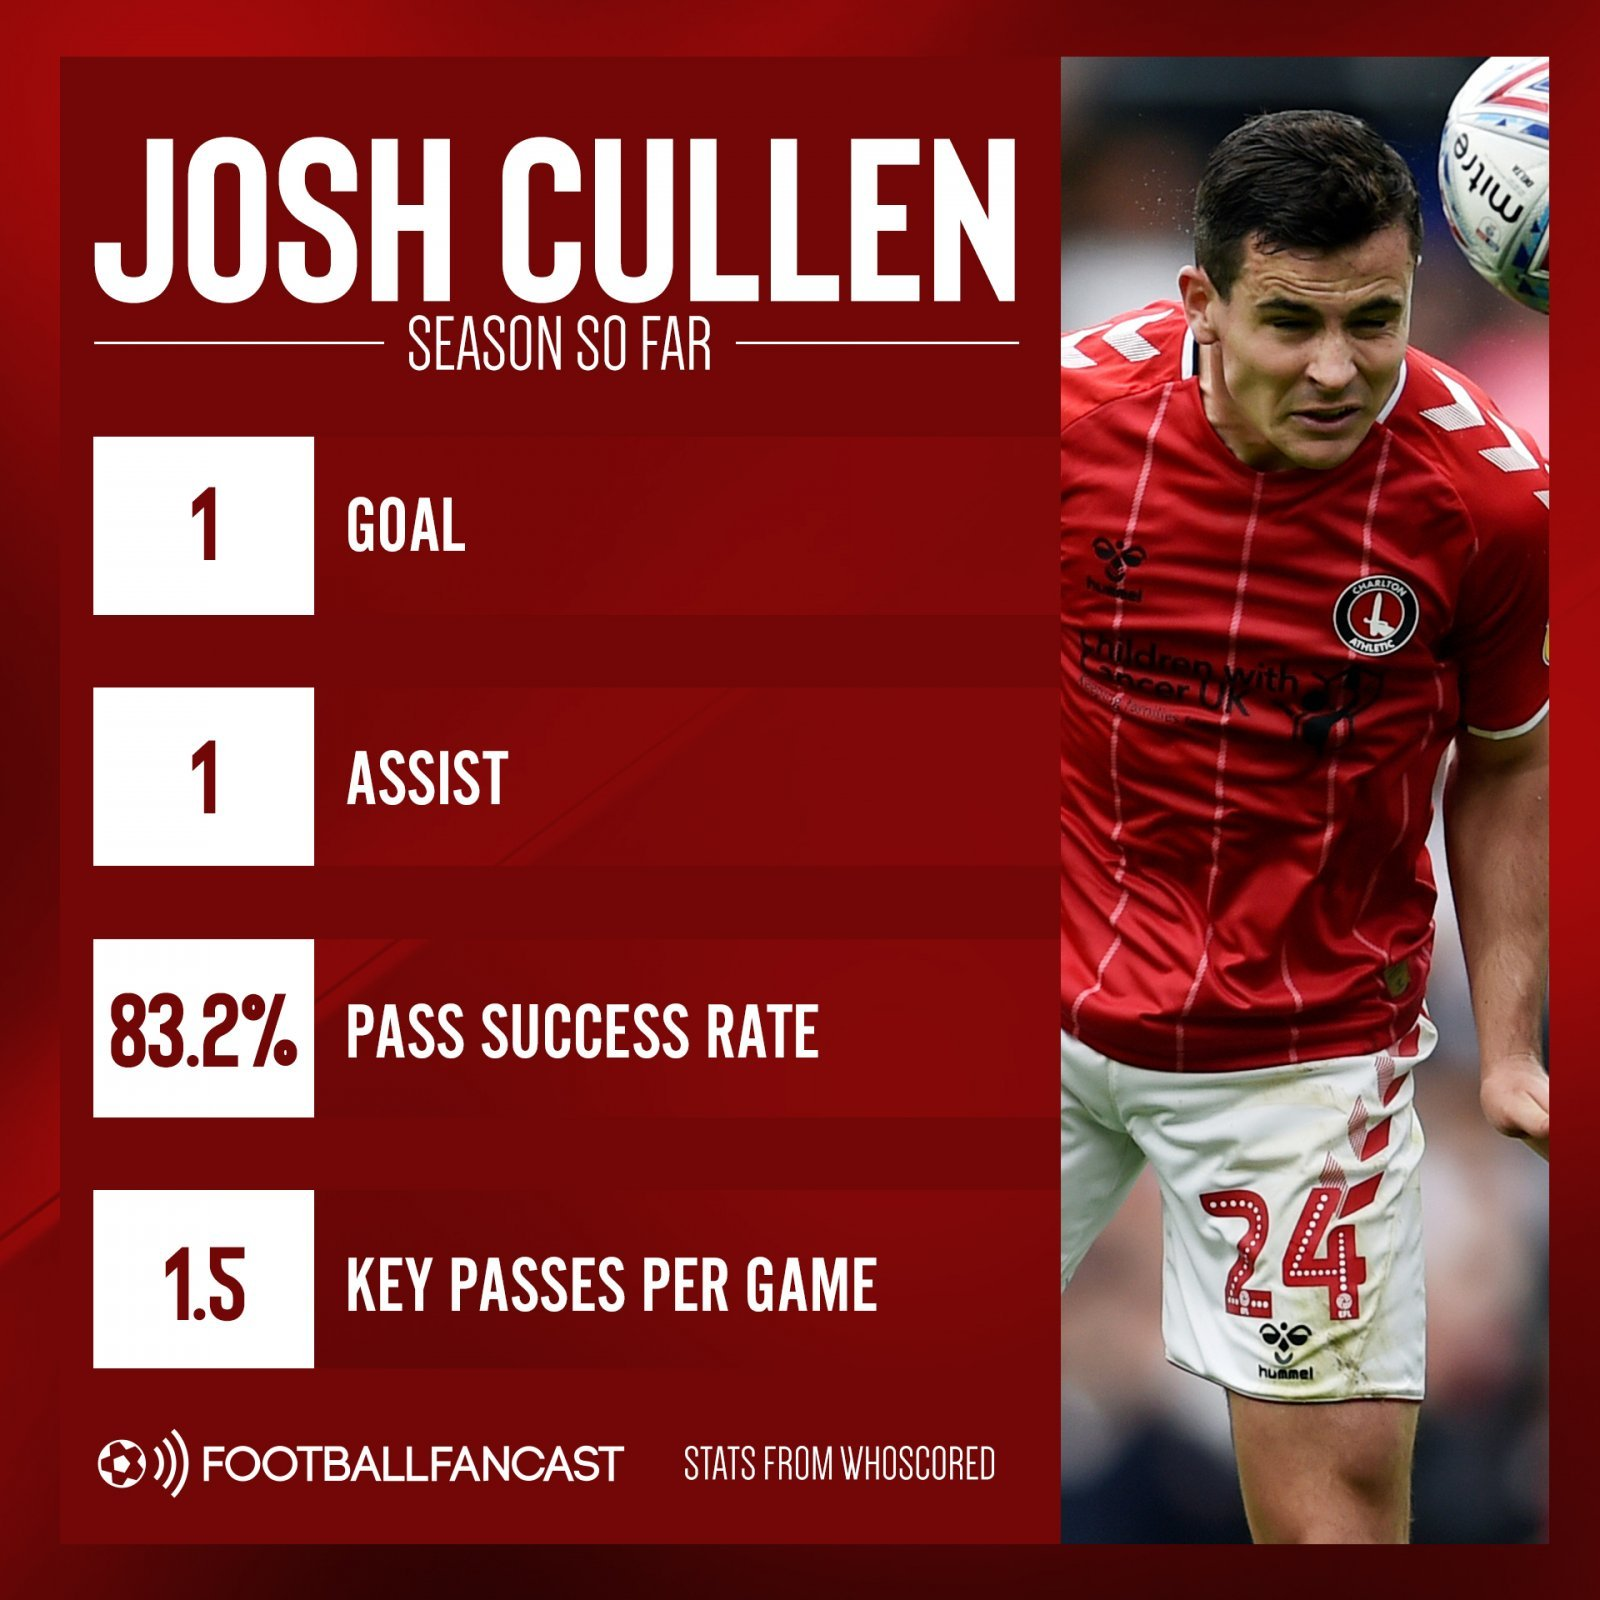 Josh Cullen this season - Steer clear: Leeds target would do little to dethrone Klich or Pablo - opinion